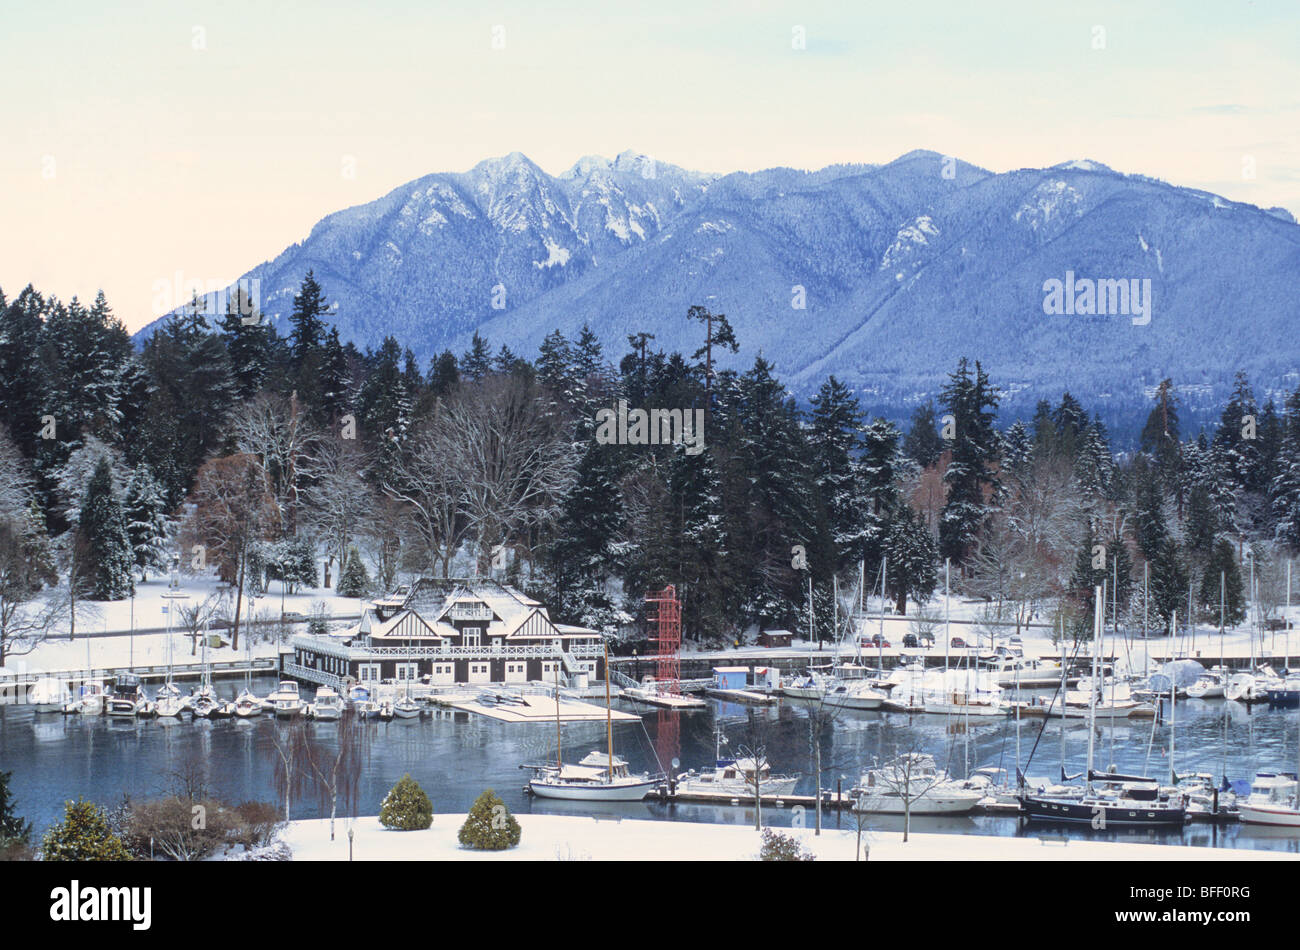 Vancouver Rowing Club, Stanley Park, and North Shore Mountains in snow, Vancouver, British Columbia, Canada - Stock Image